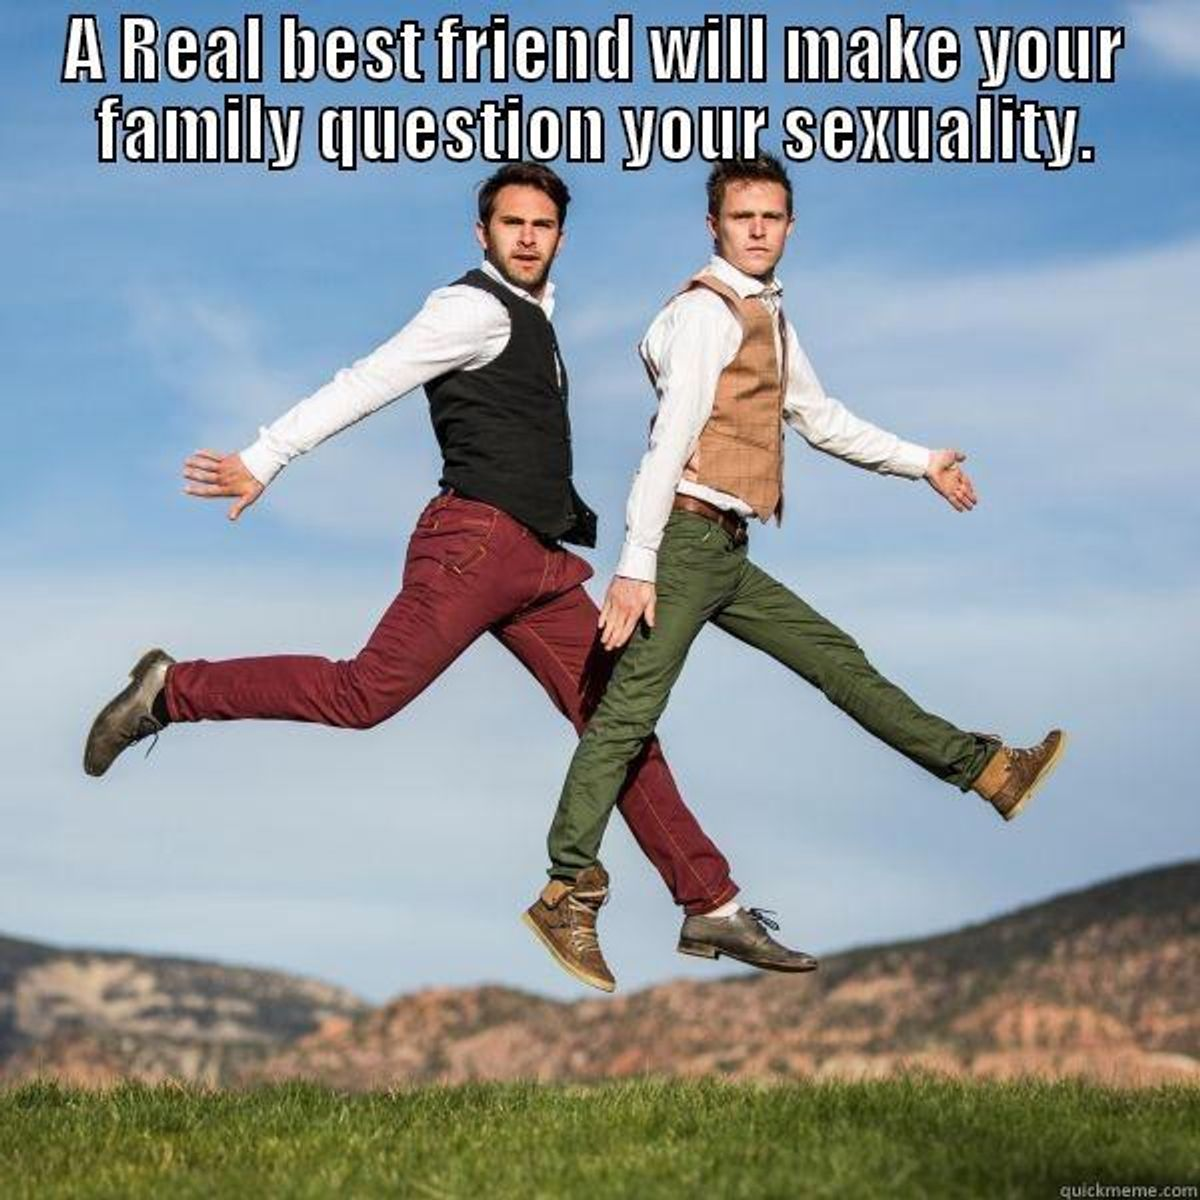 19 Signs You're In An Unstoppable Bromance!